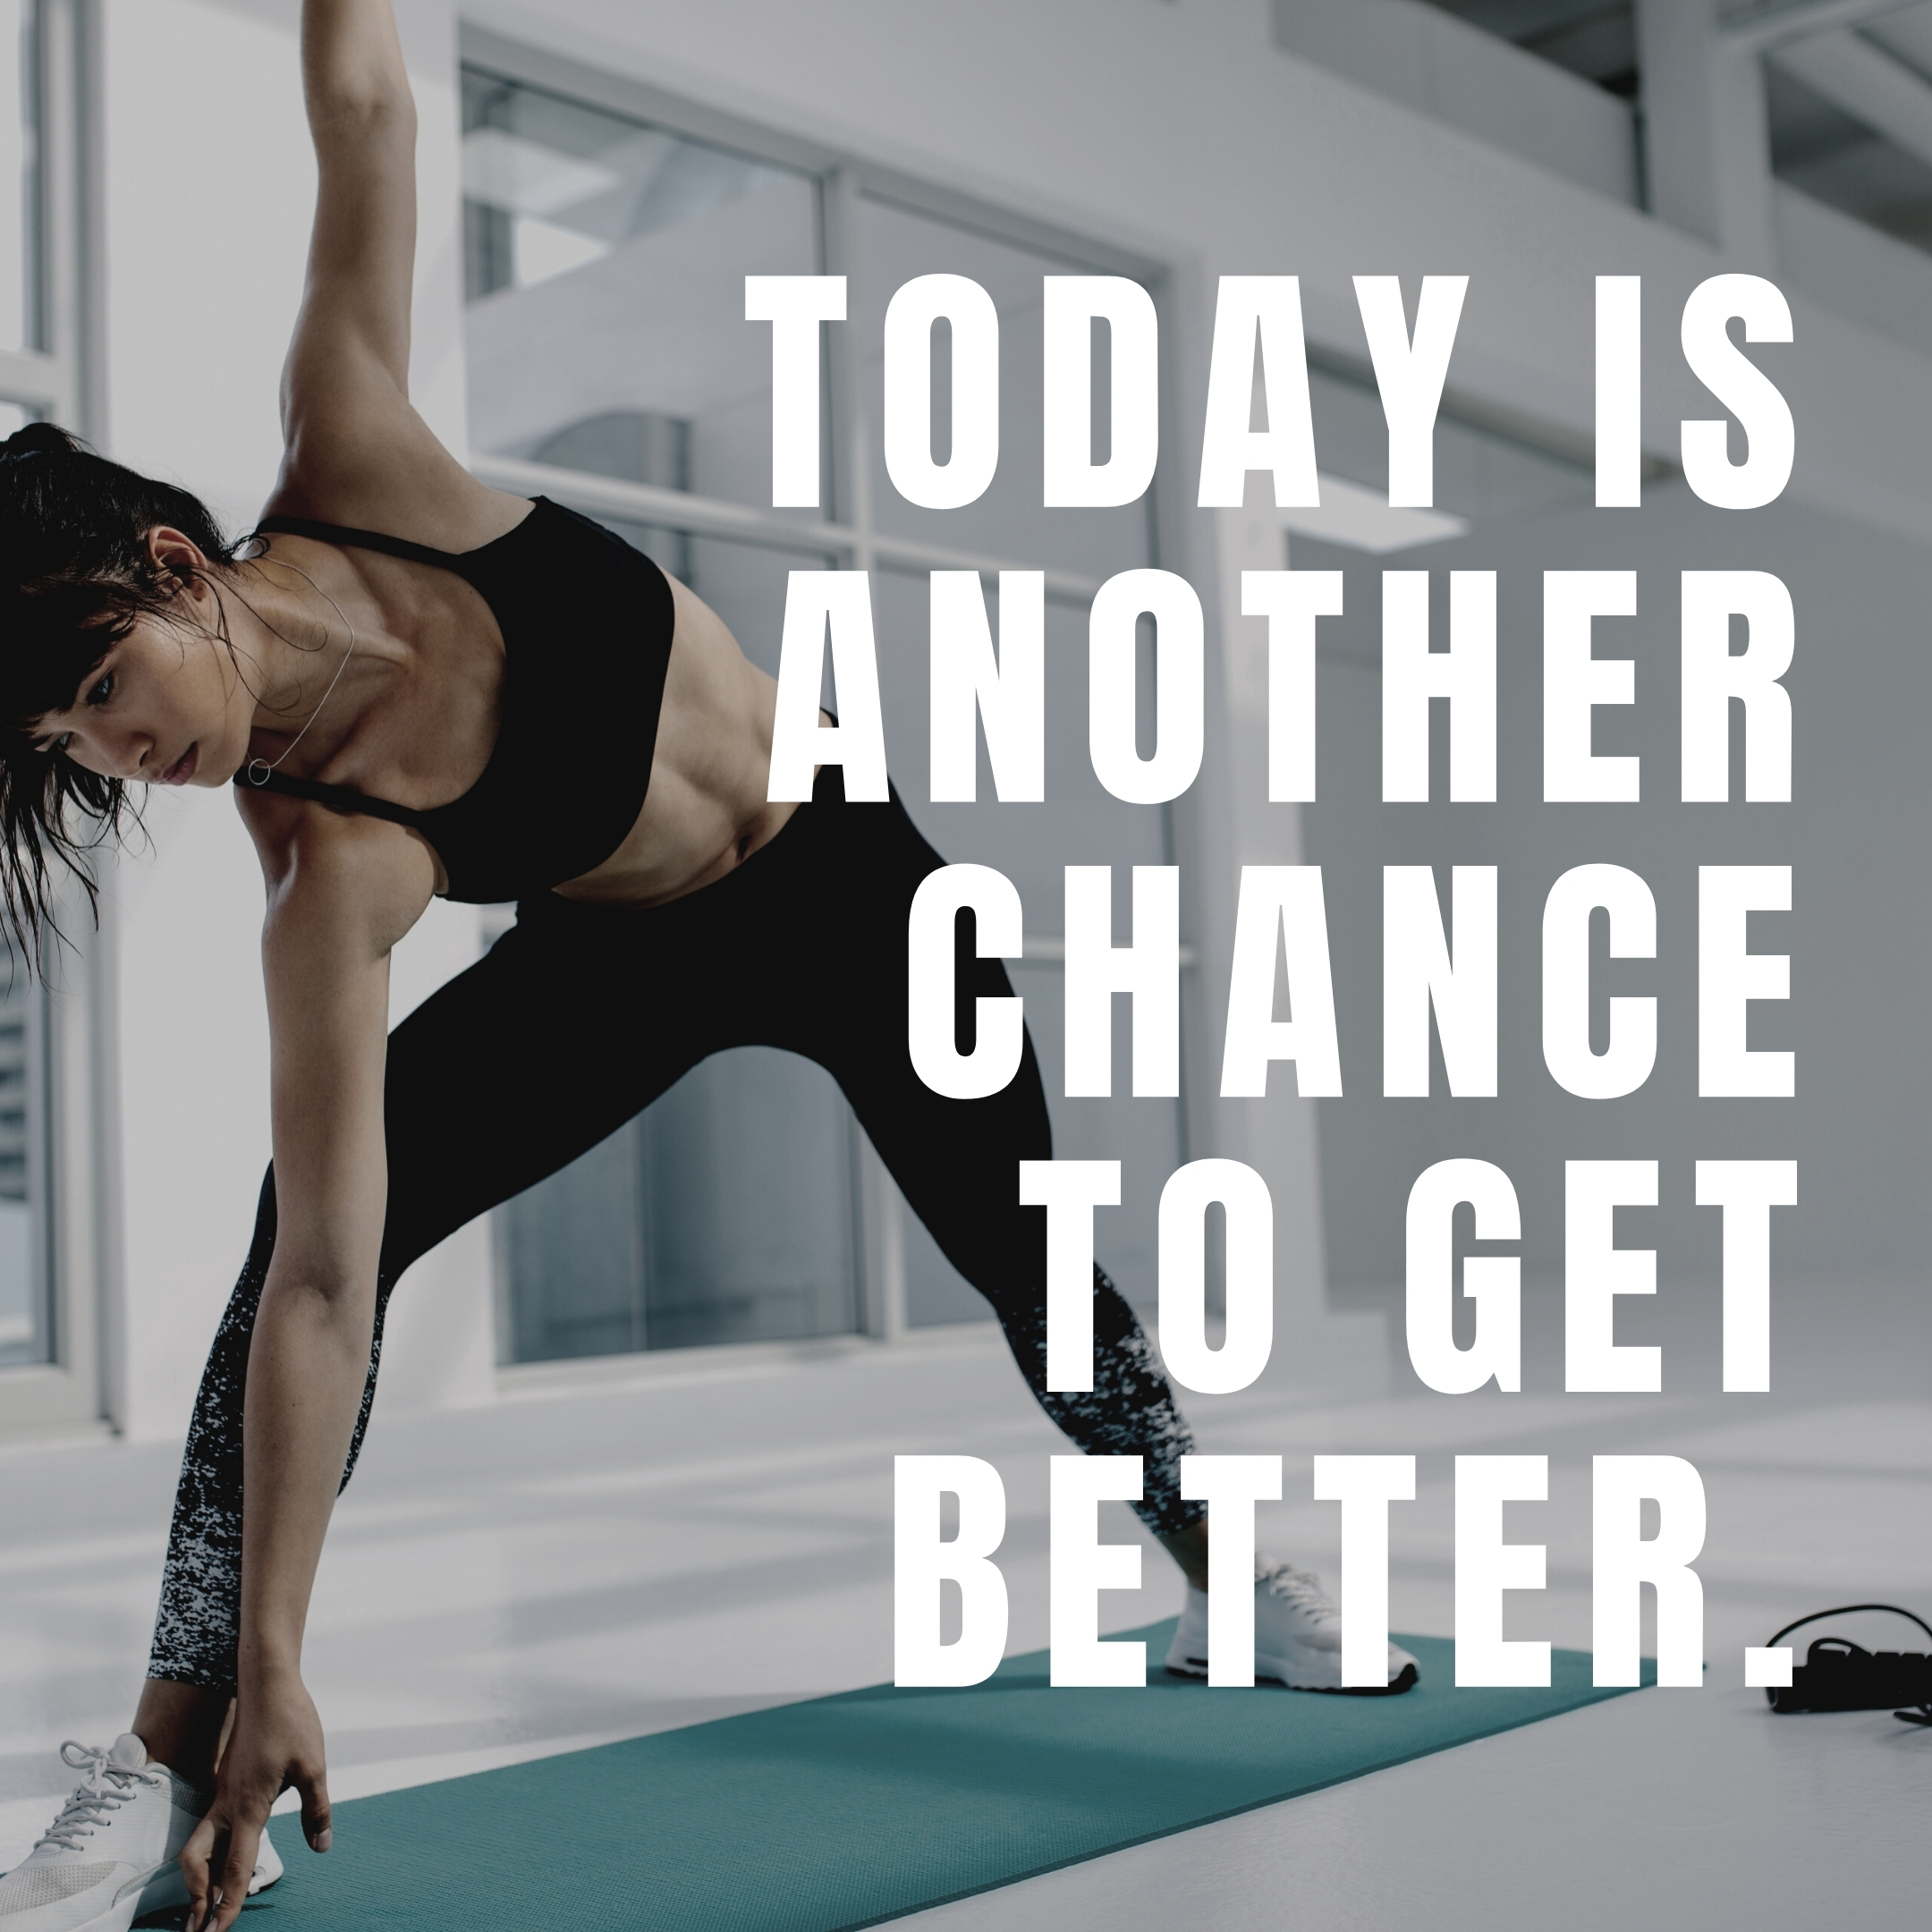 another chance quote   daily motivation